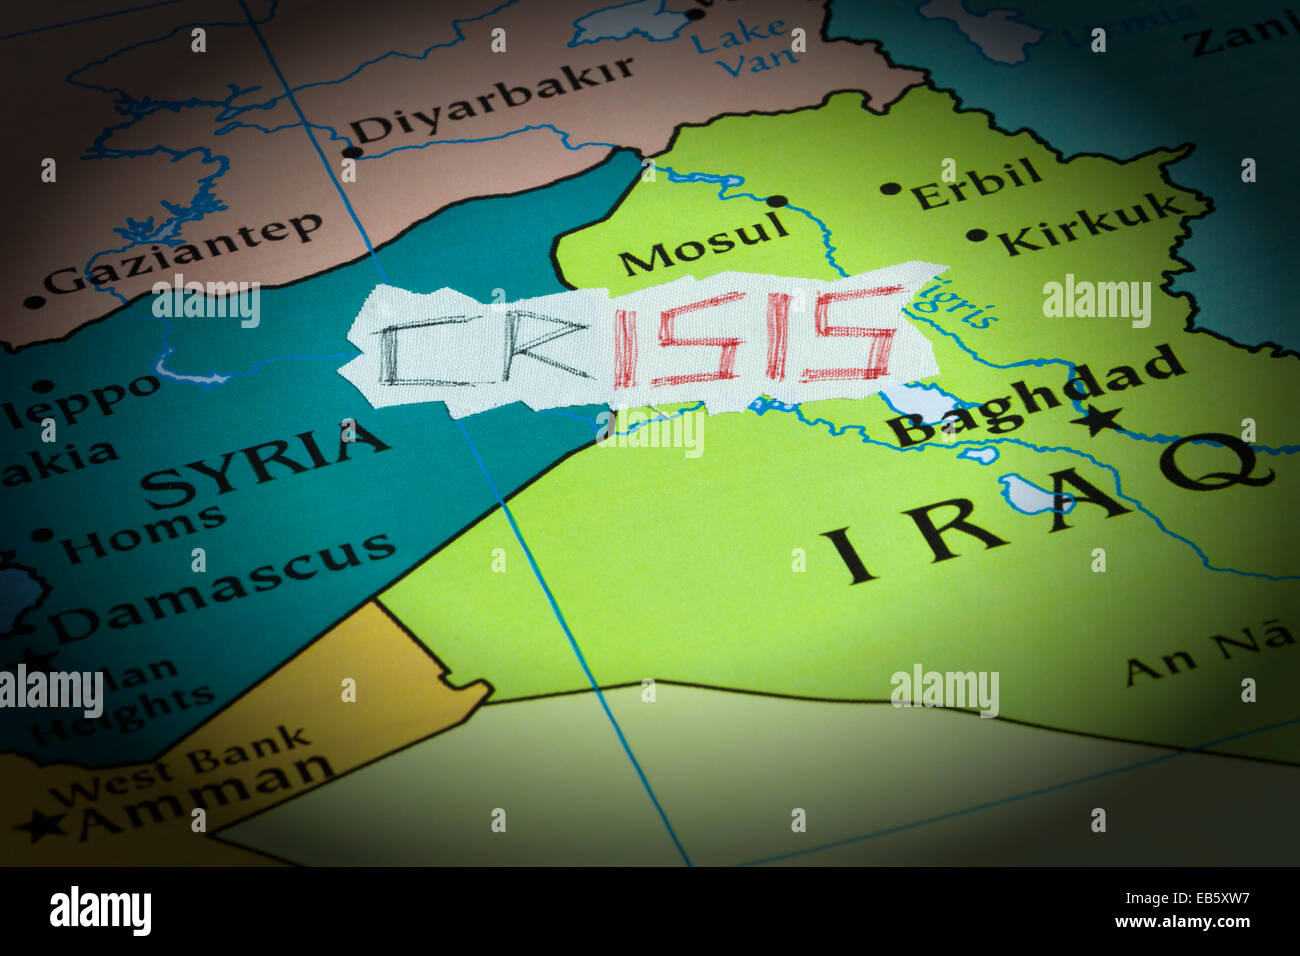 Conceptual representation of the crisis caused by the Islamic State - Stock Image